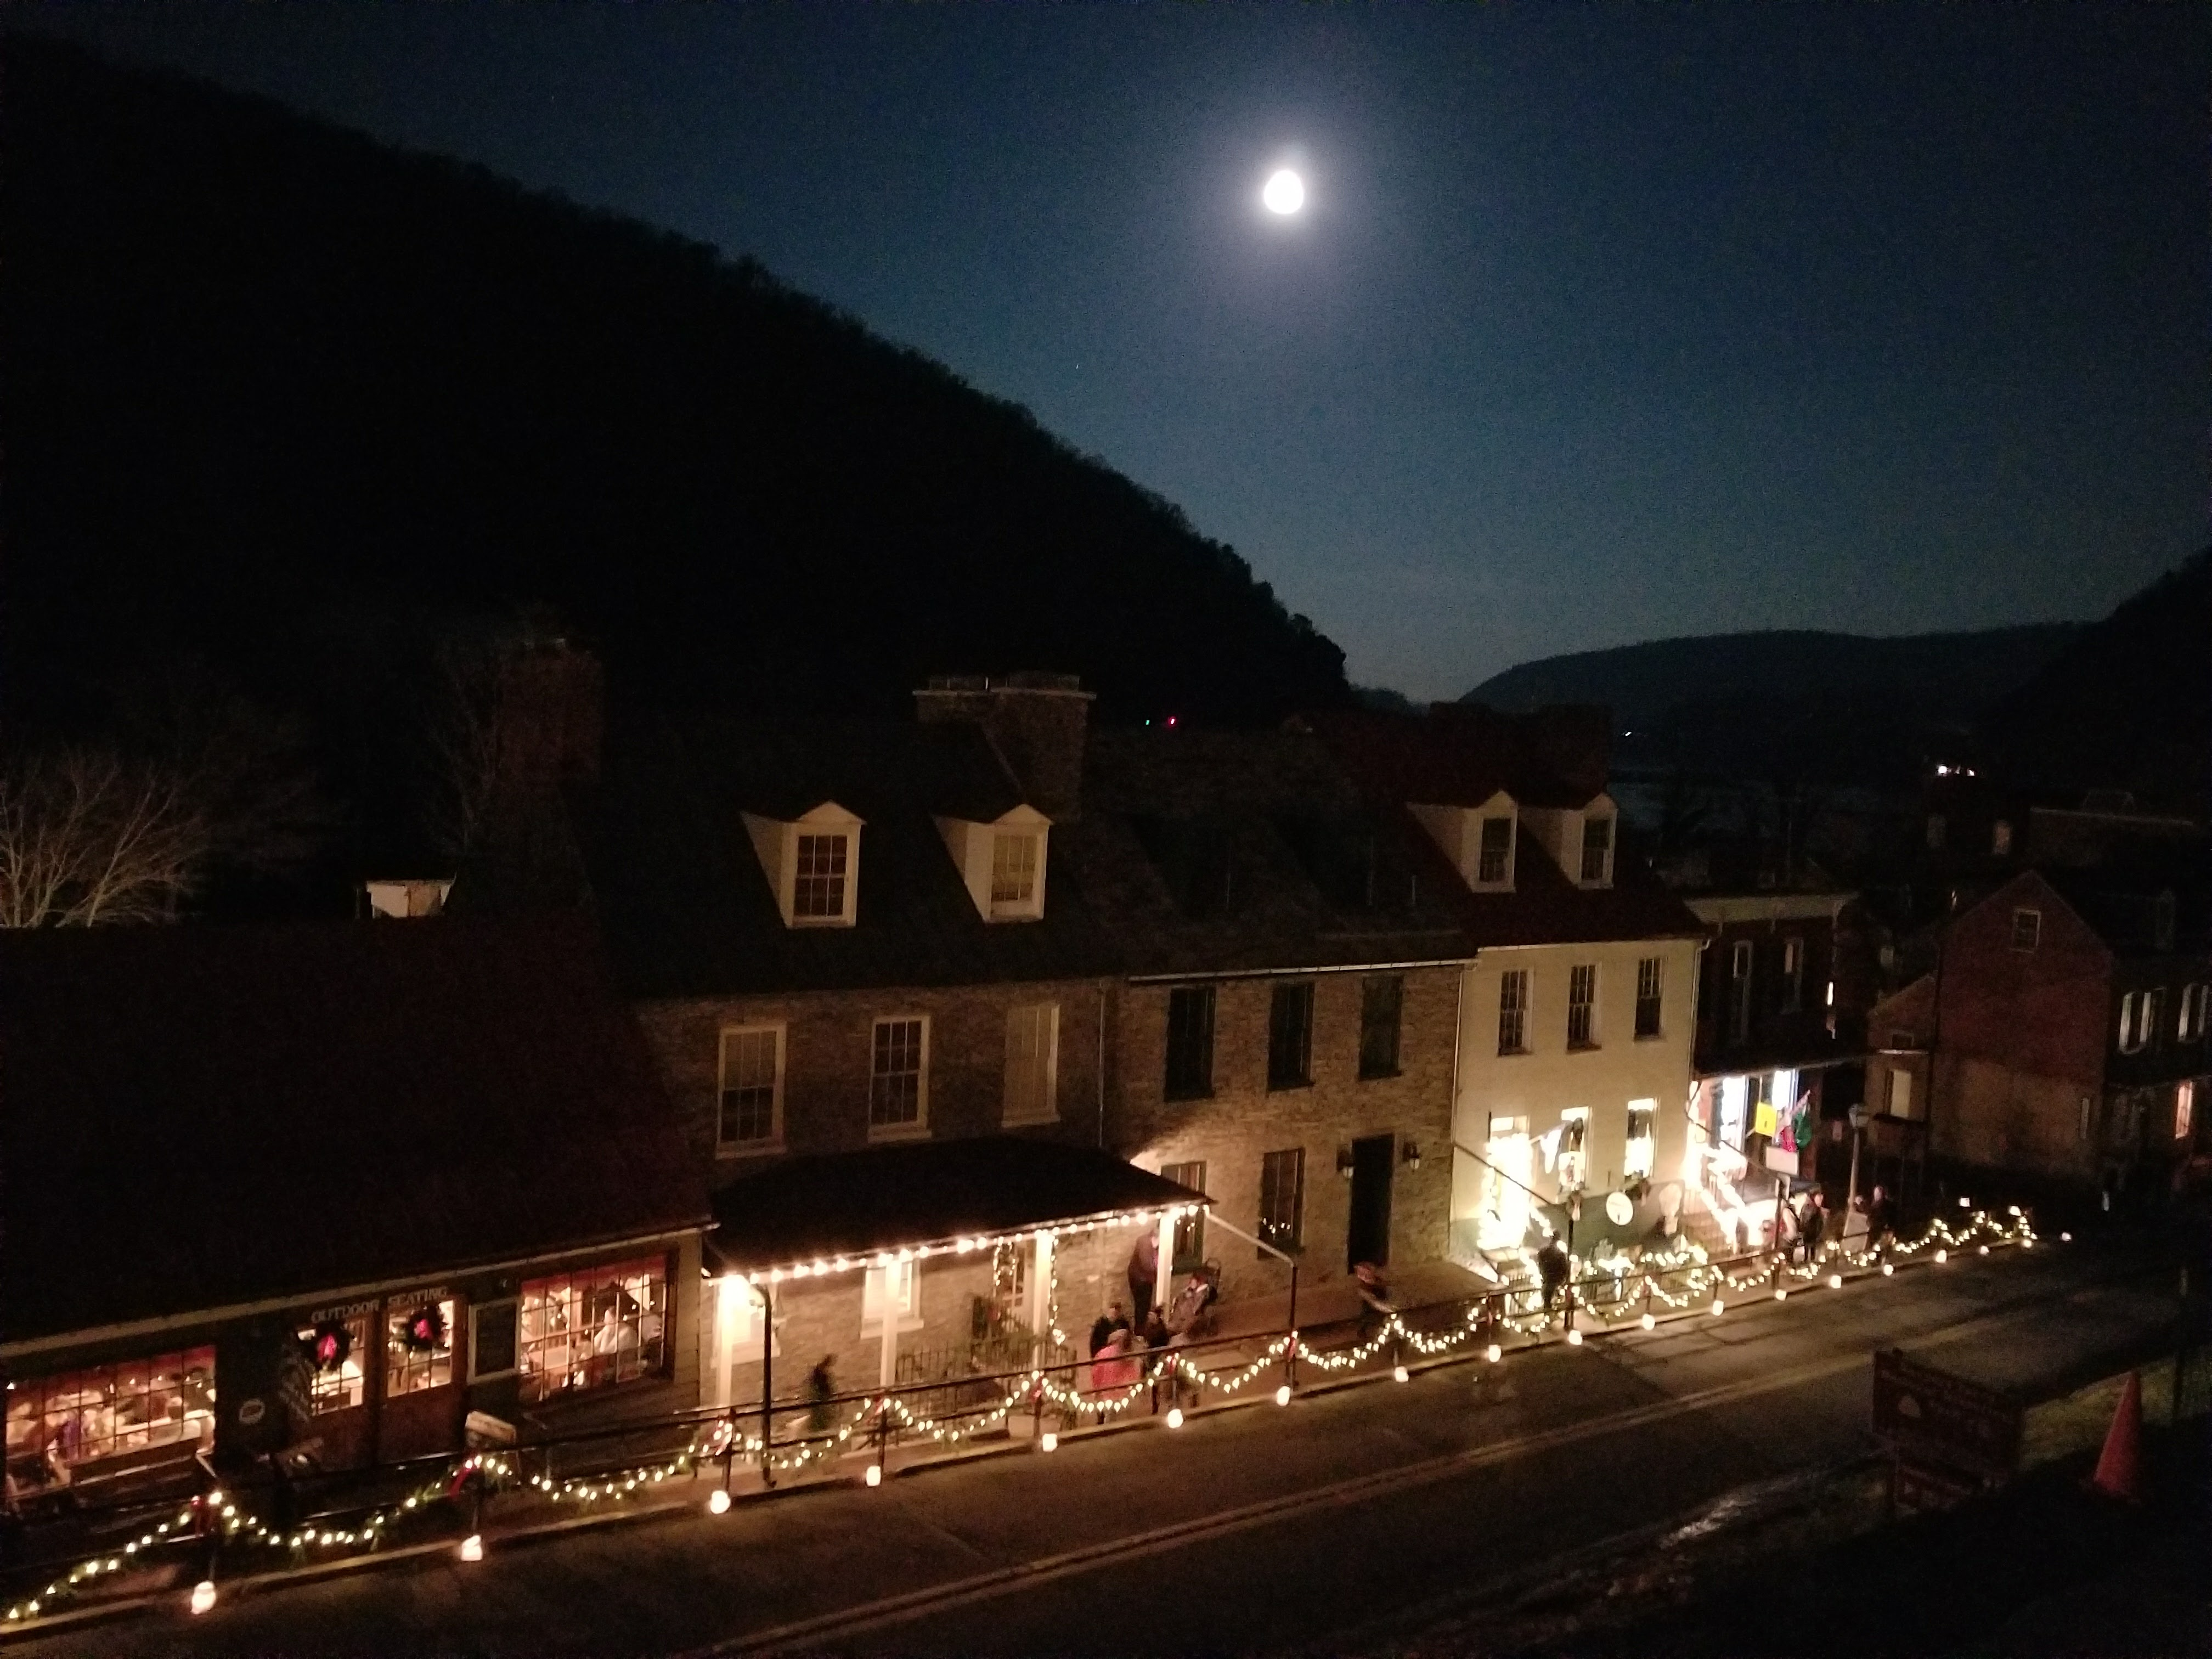 Harpers Ferry, Christmas, night, full moon